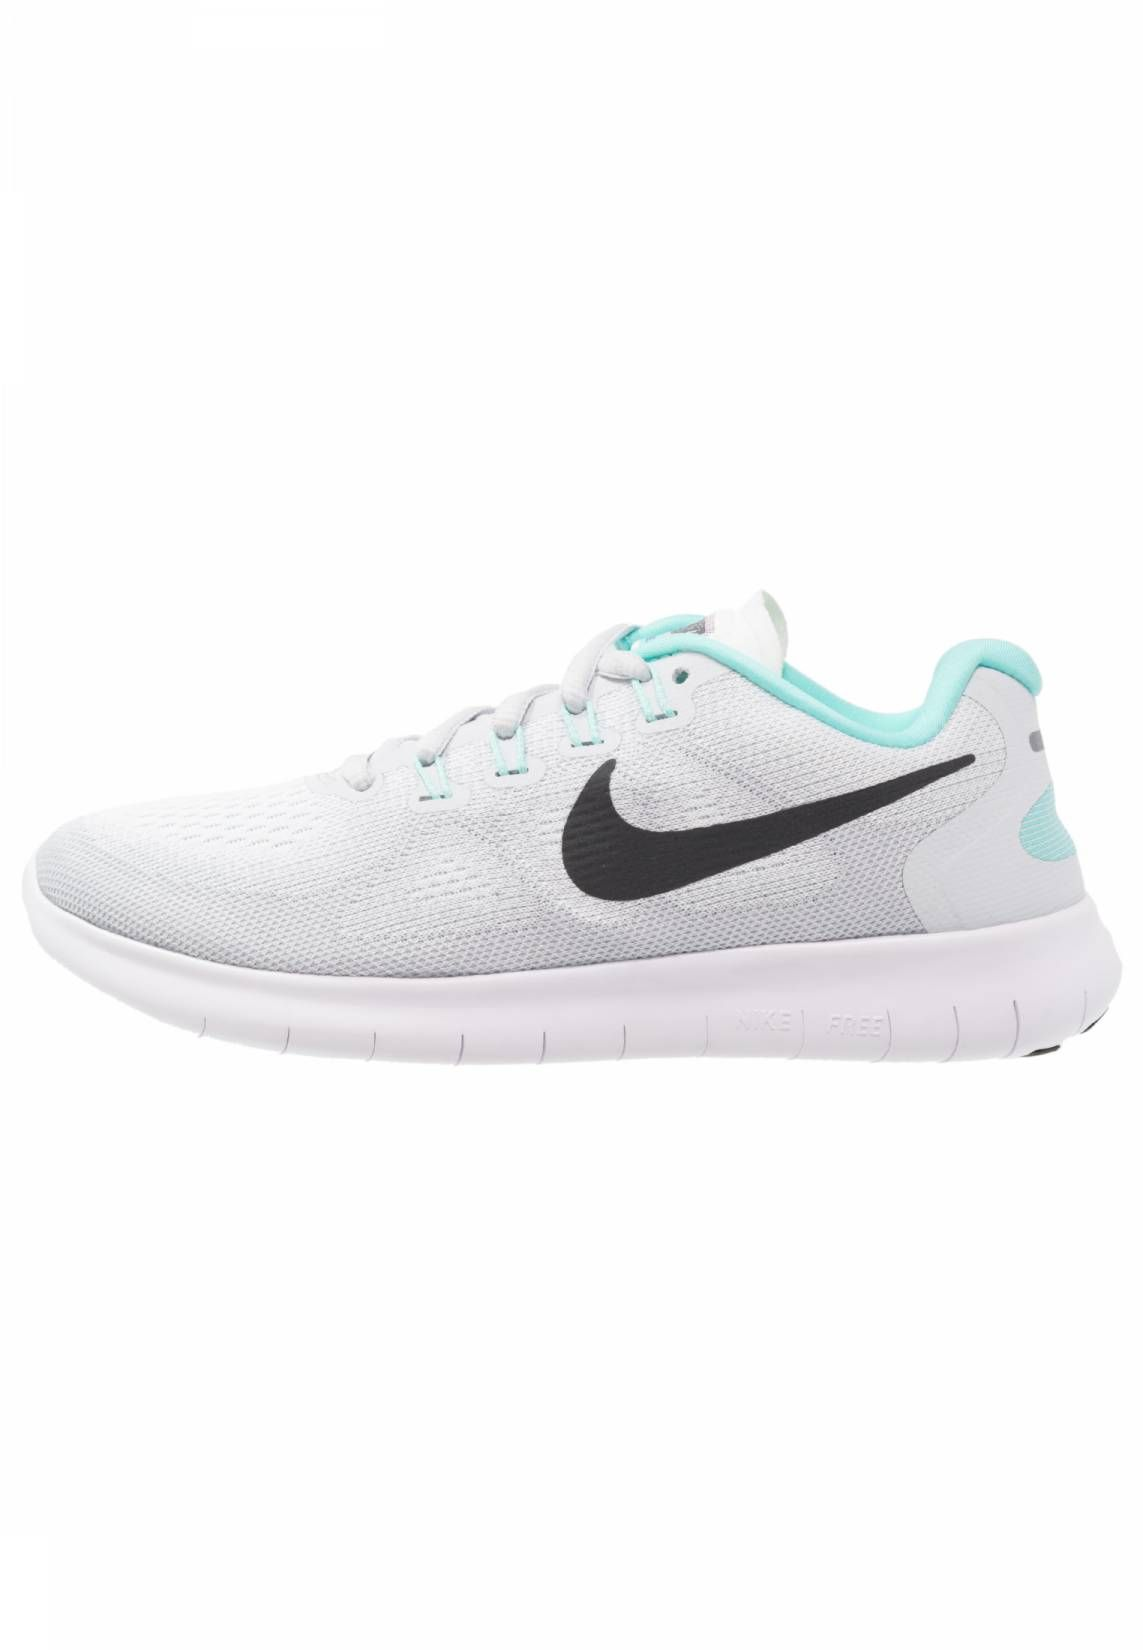 buy popular 9a60d 8f7d5 Nike Performance. FREE RUN 2 - Laufschuh Natural running - white  anthracite pure